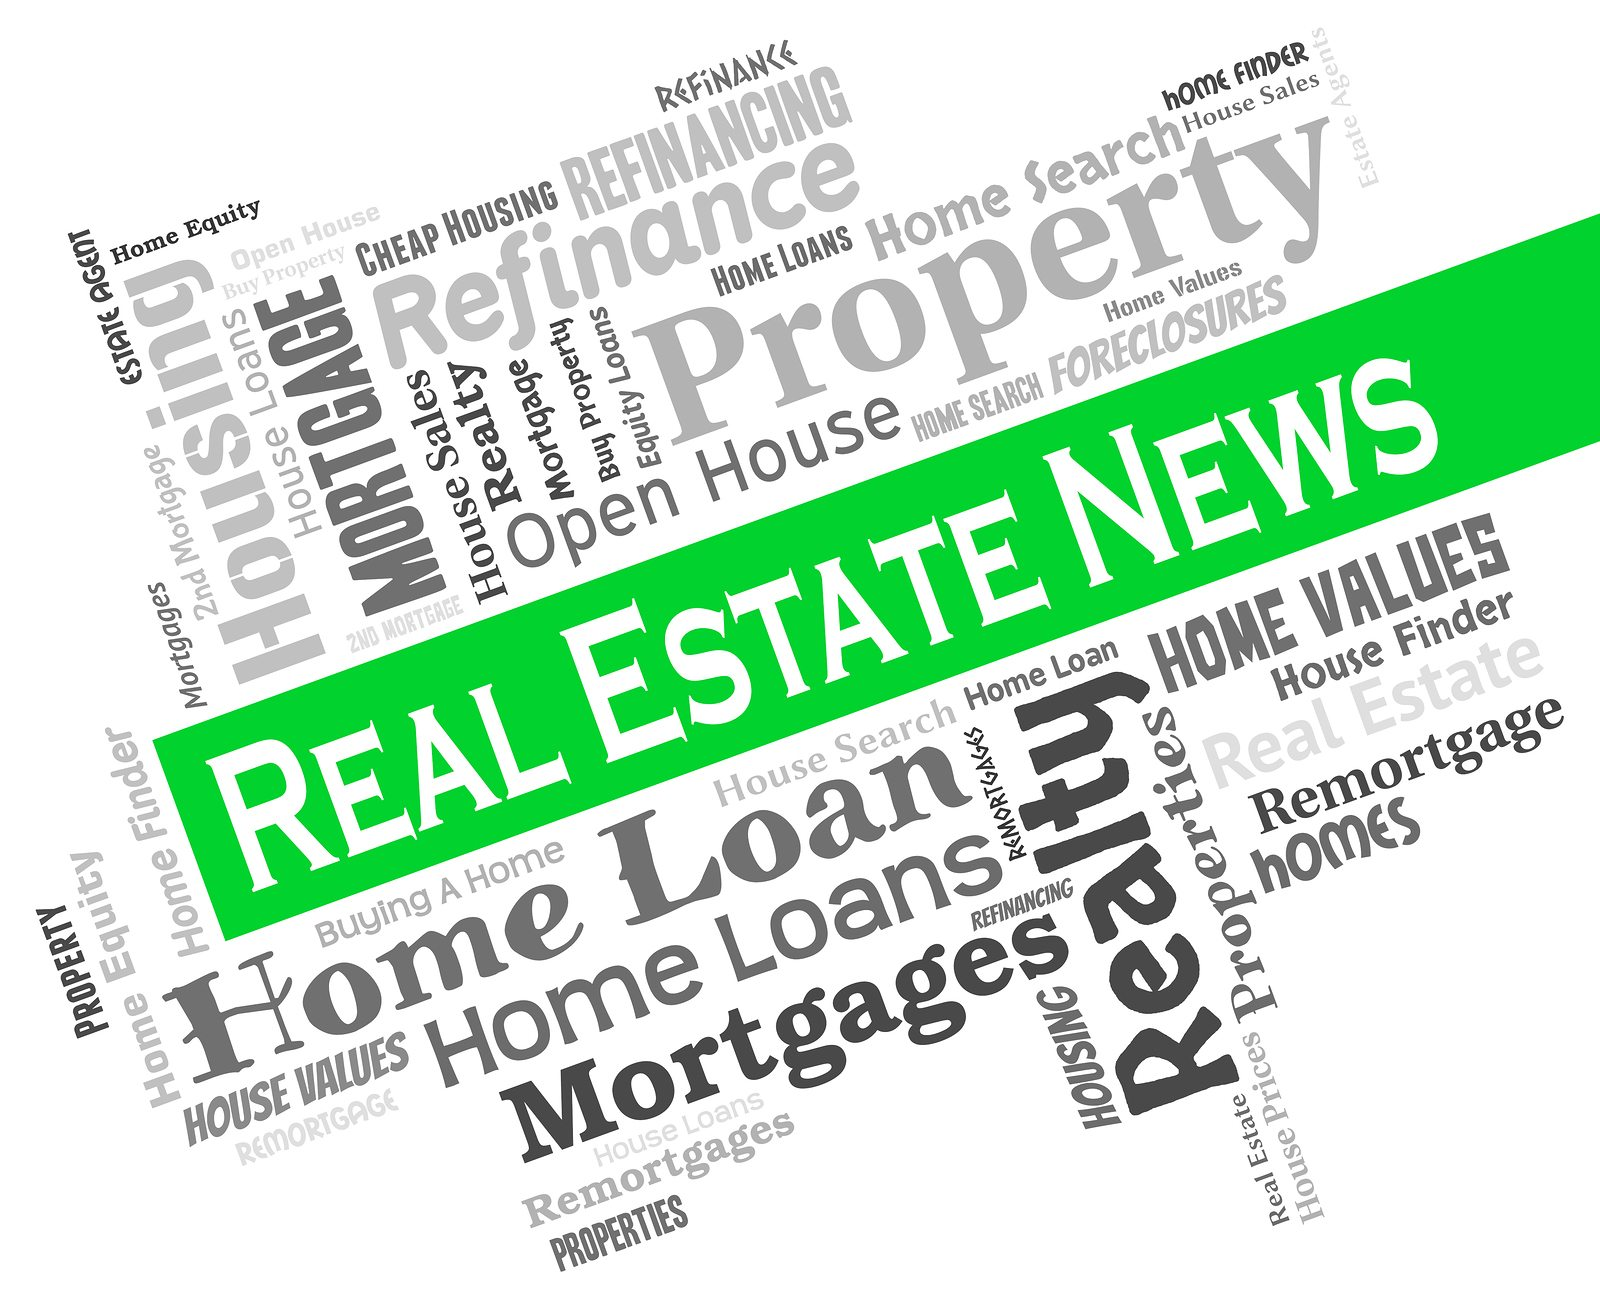 Realtors Property Resource® Announces Retirement of CEO, Appointment of New Leader